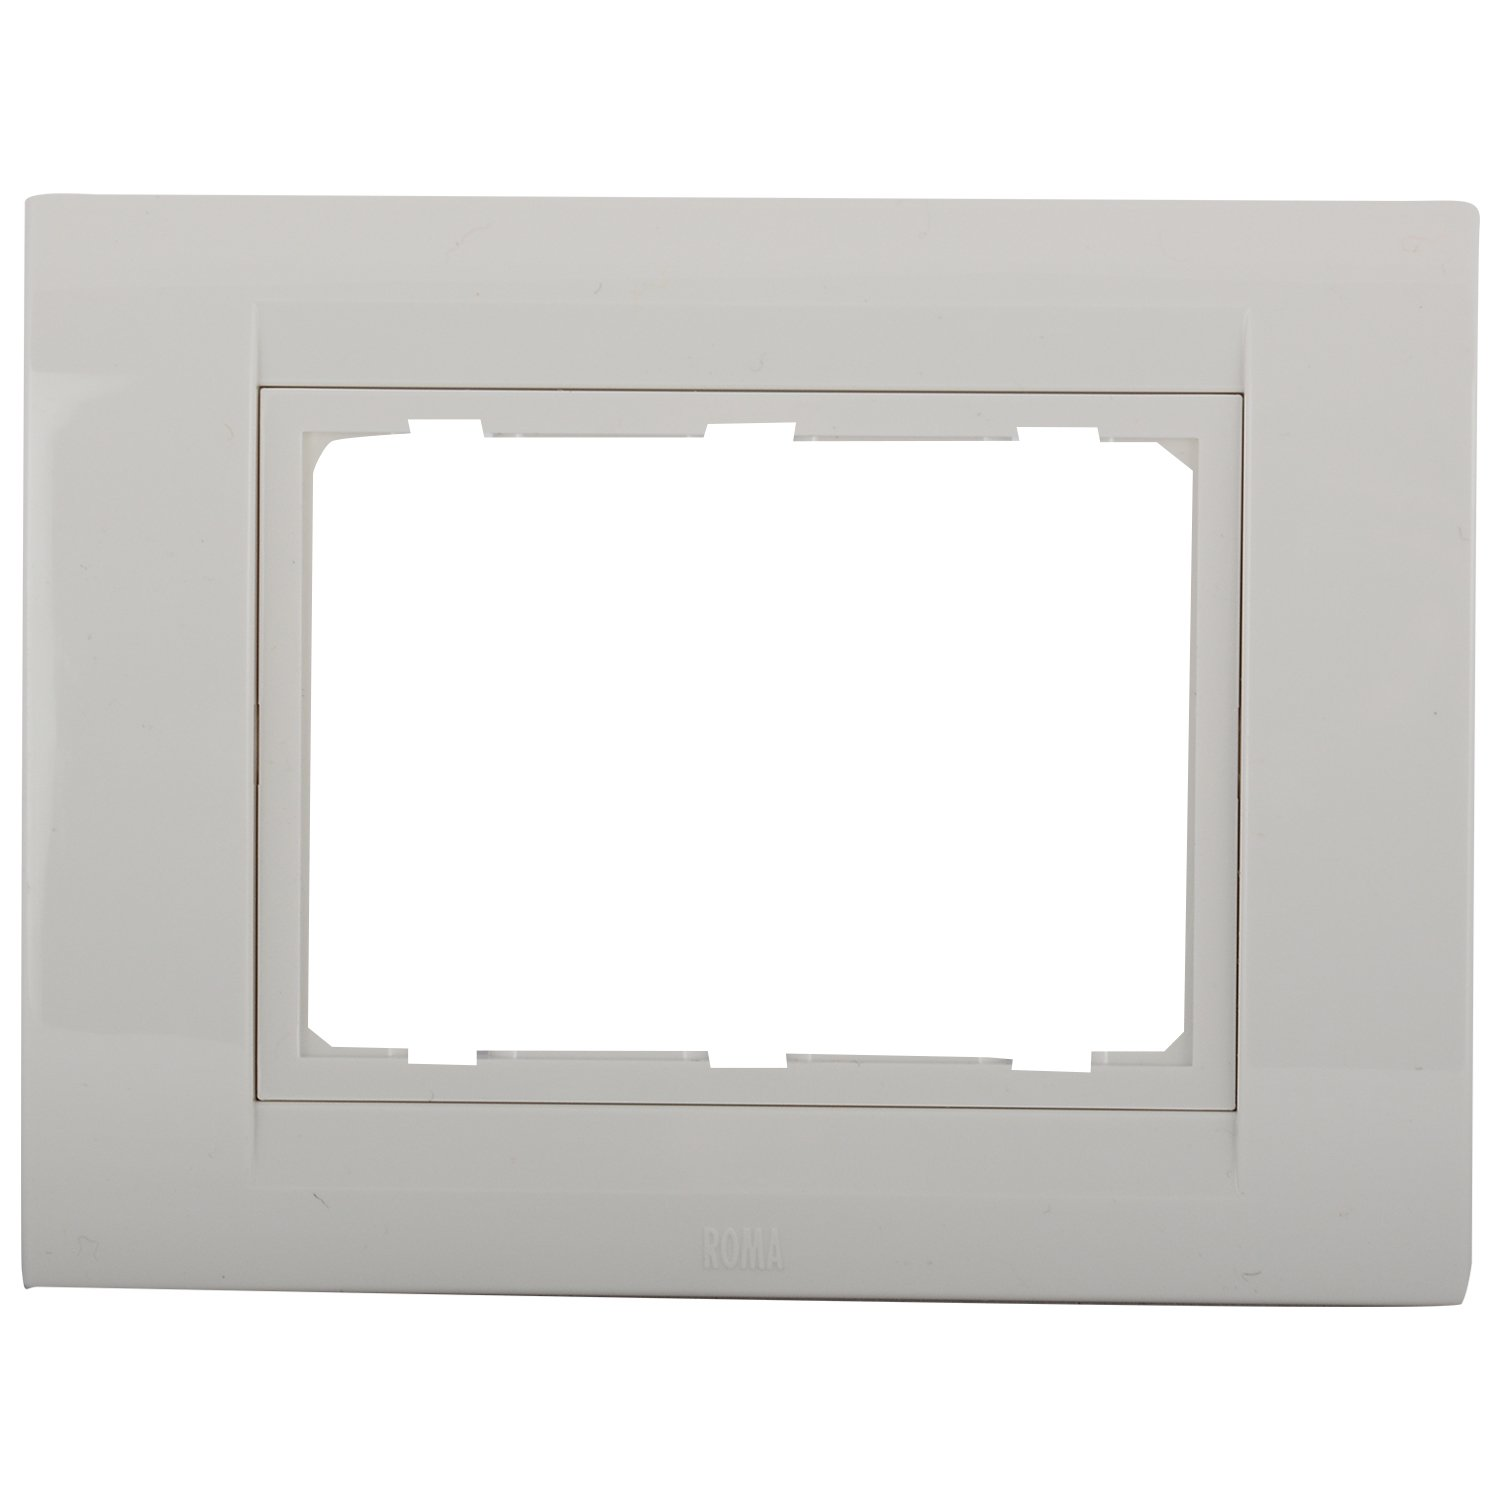 Wall Plates Online Buy In India Best Prices Wiring An Outlet Switch Combo Anchor Roma 3 Module Tresa Plate White